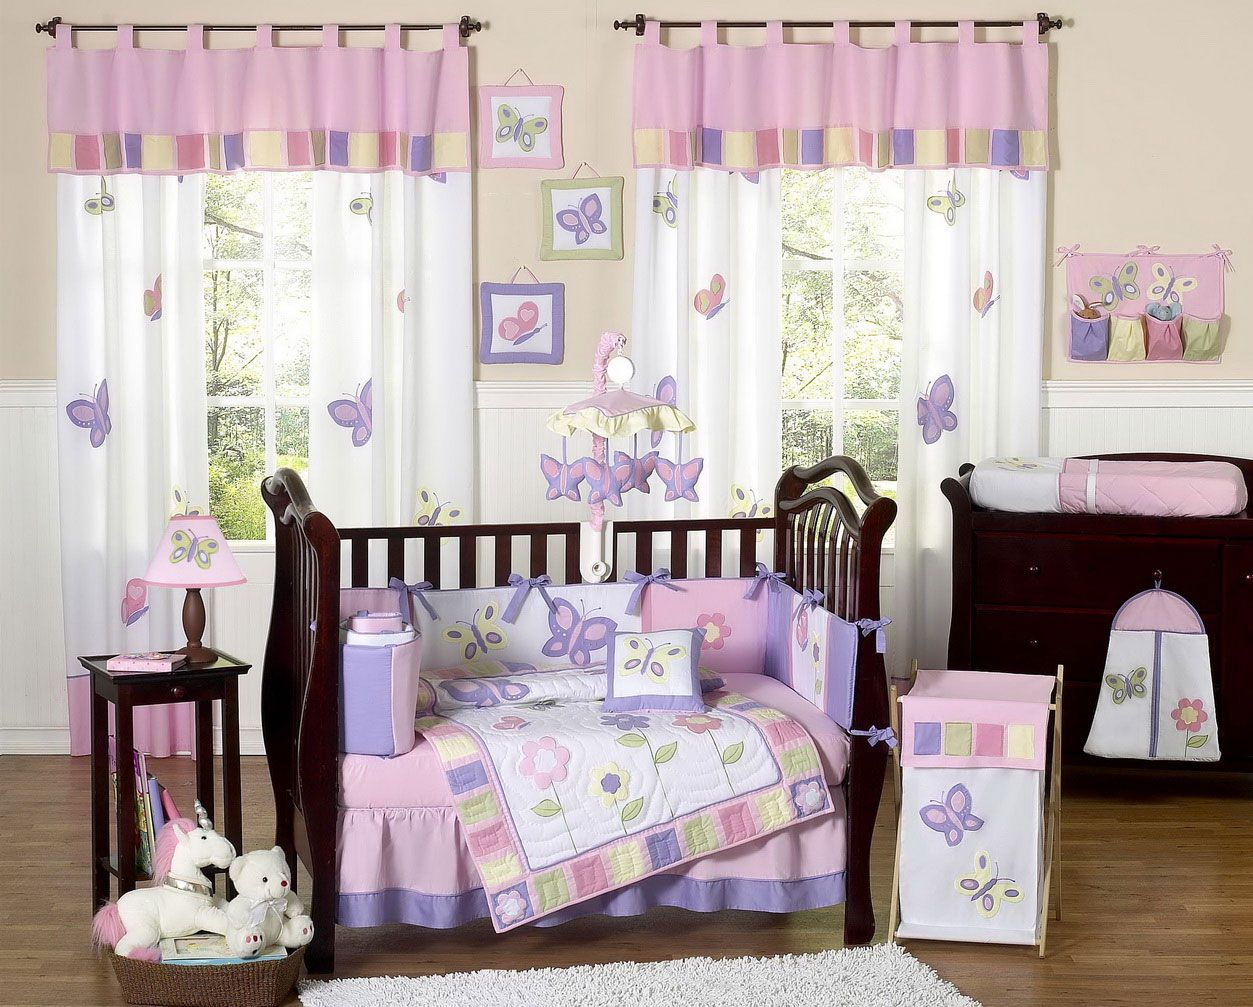 Baby bedding lamb theme sweet pea lamb baby bedding and nursery - Pink And Purple Butterfly Baby Bedding Crib Set Introducing The Stylish Pink And Purple Butterfly Baby Bedding Collection Set By Sweet Jojo Designs